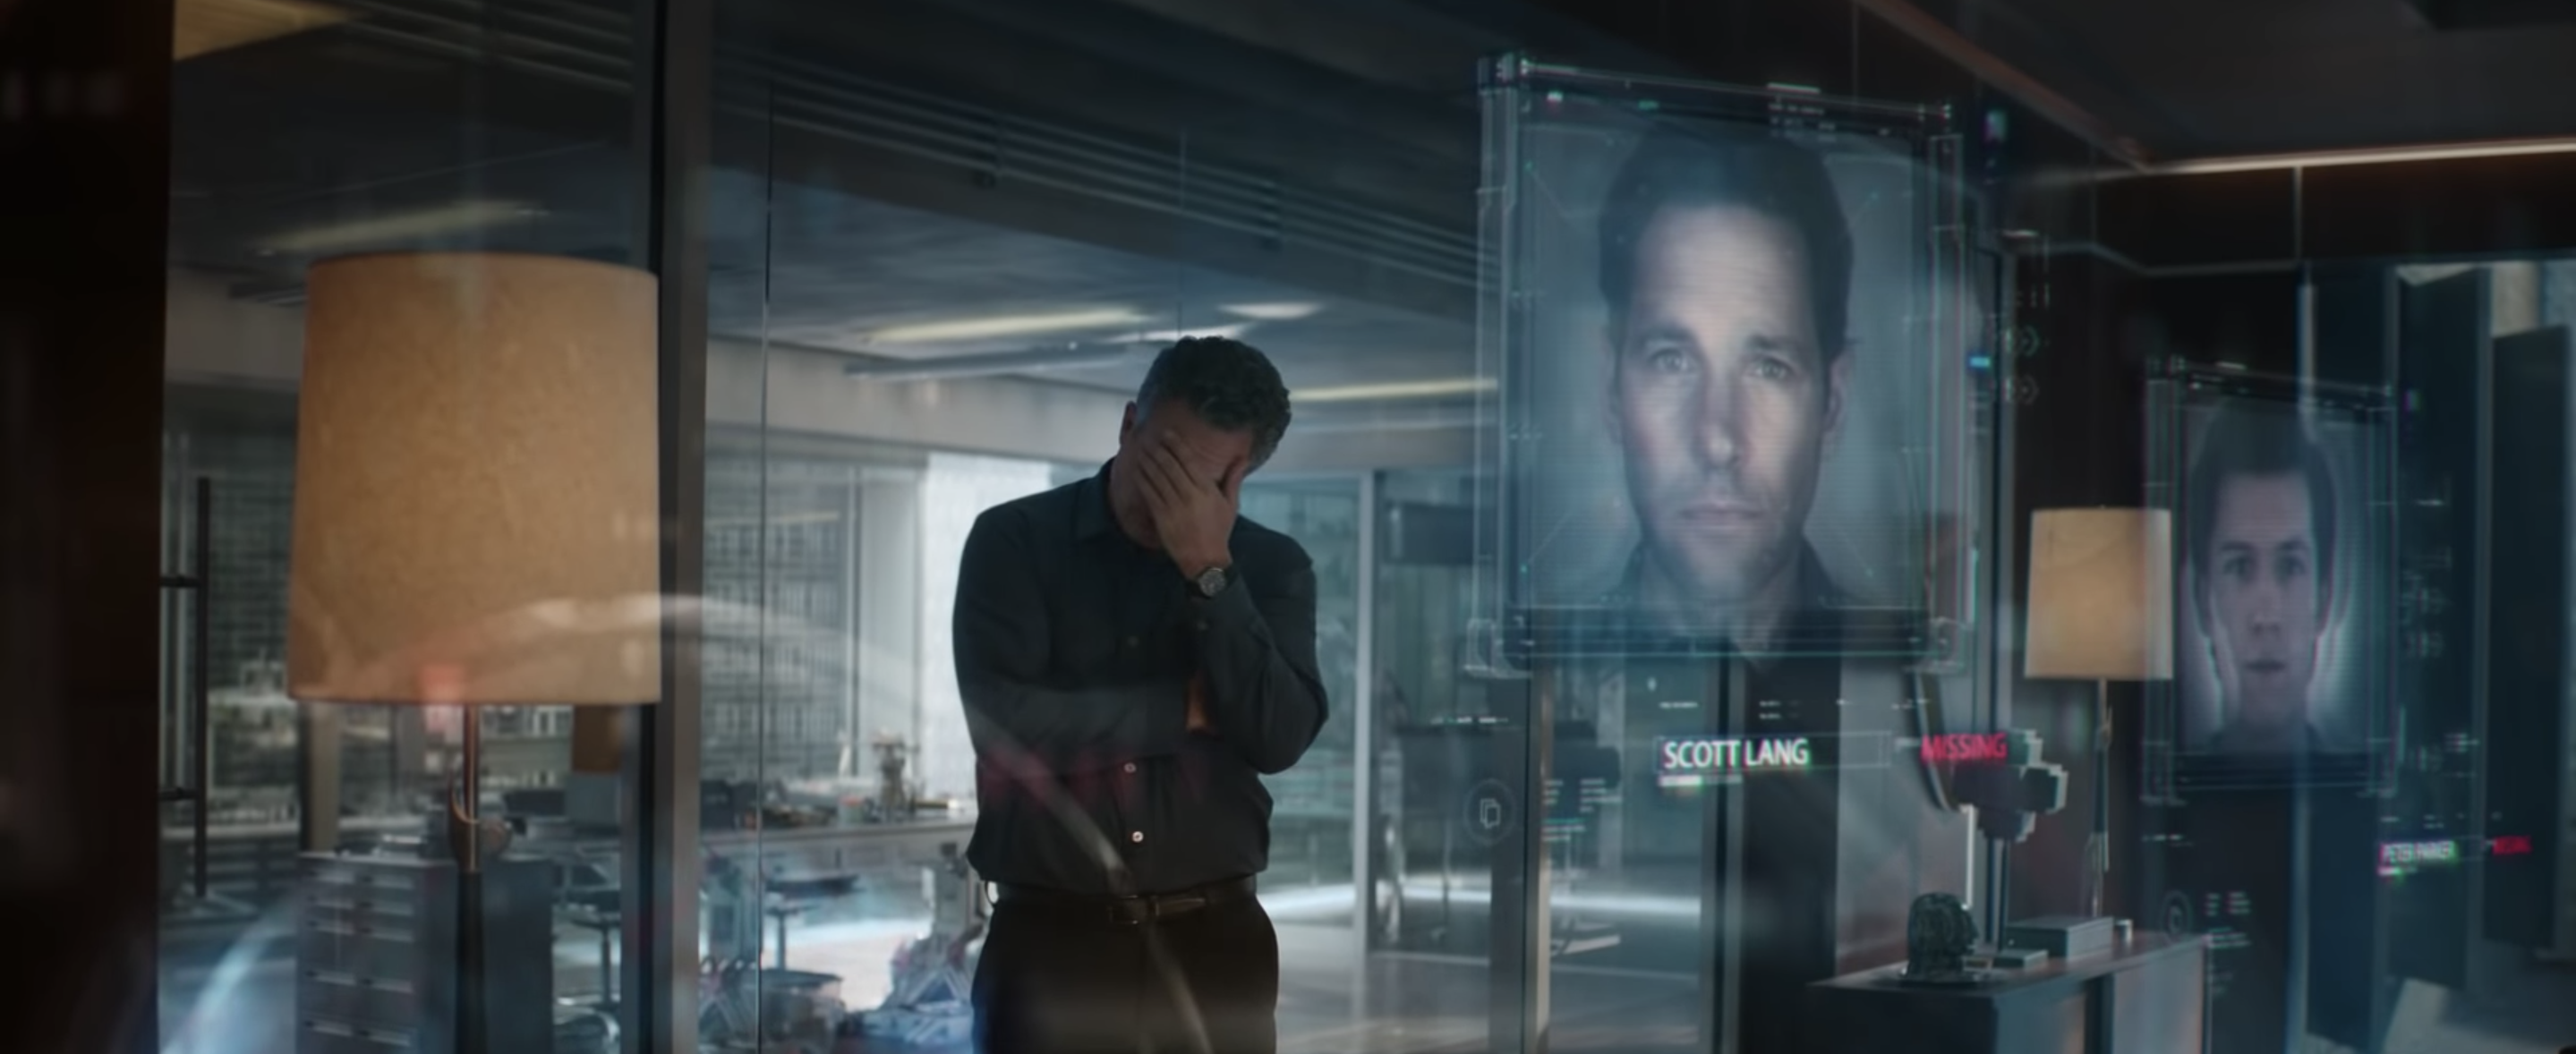 Avengers: Endgame could turn Ant-Man into one of its most